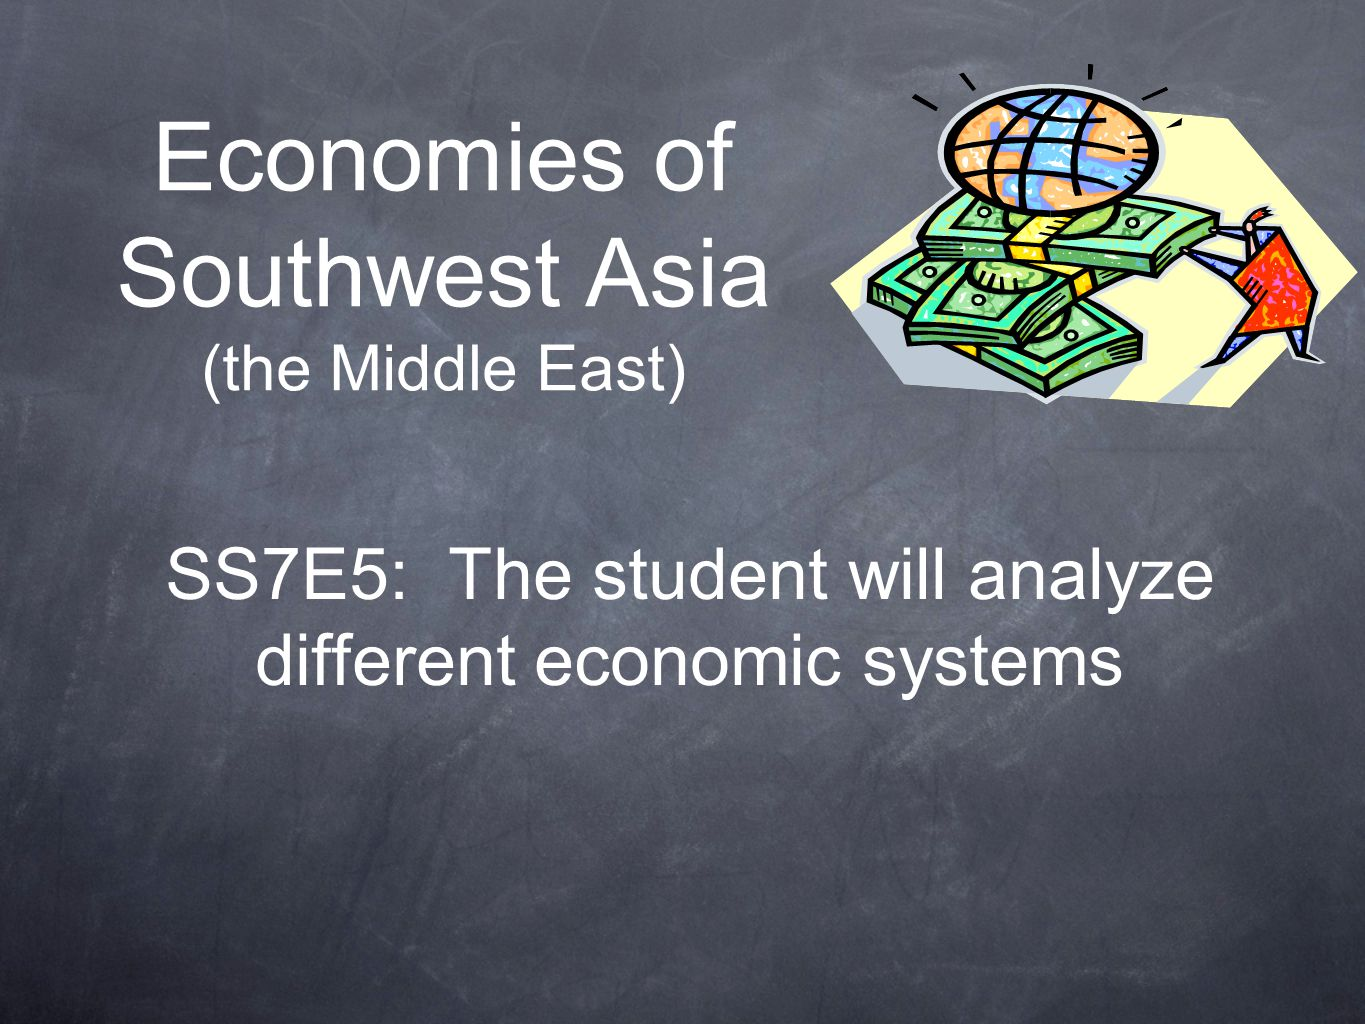 Economies of Southwest Asia (the Middle East)